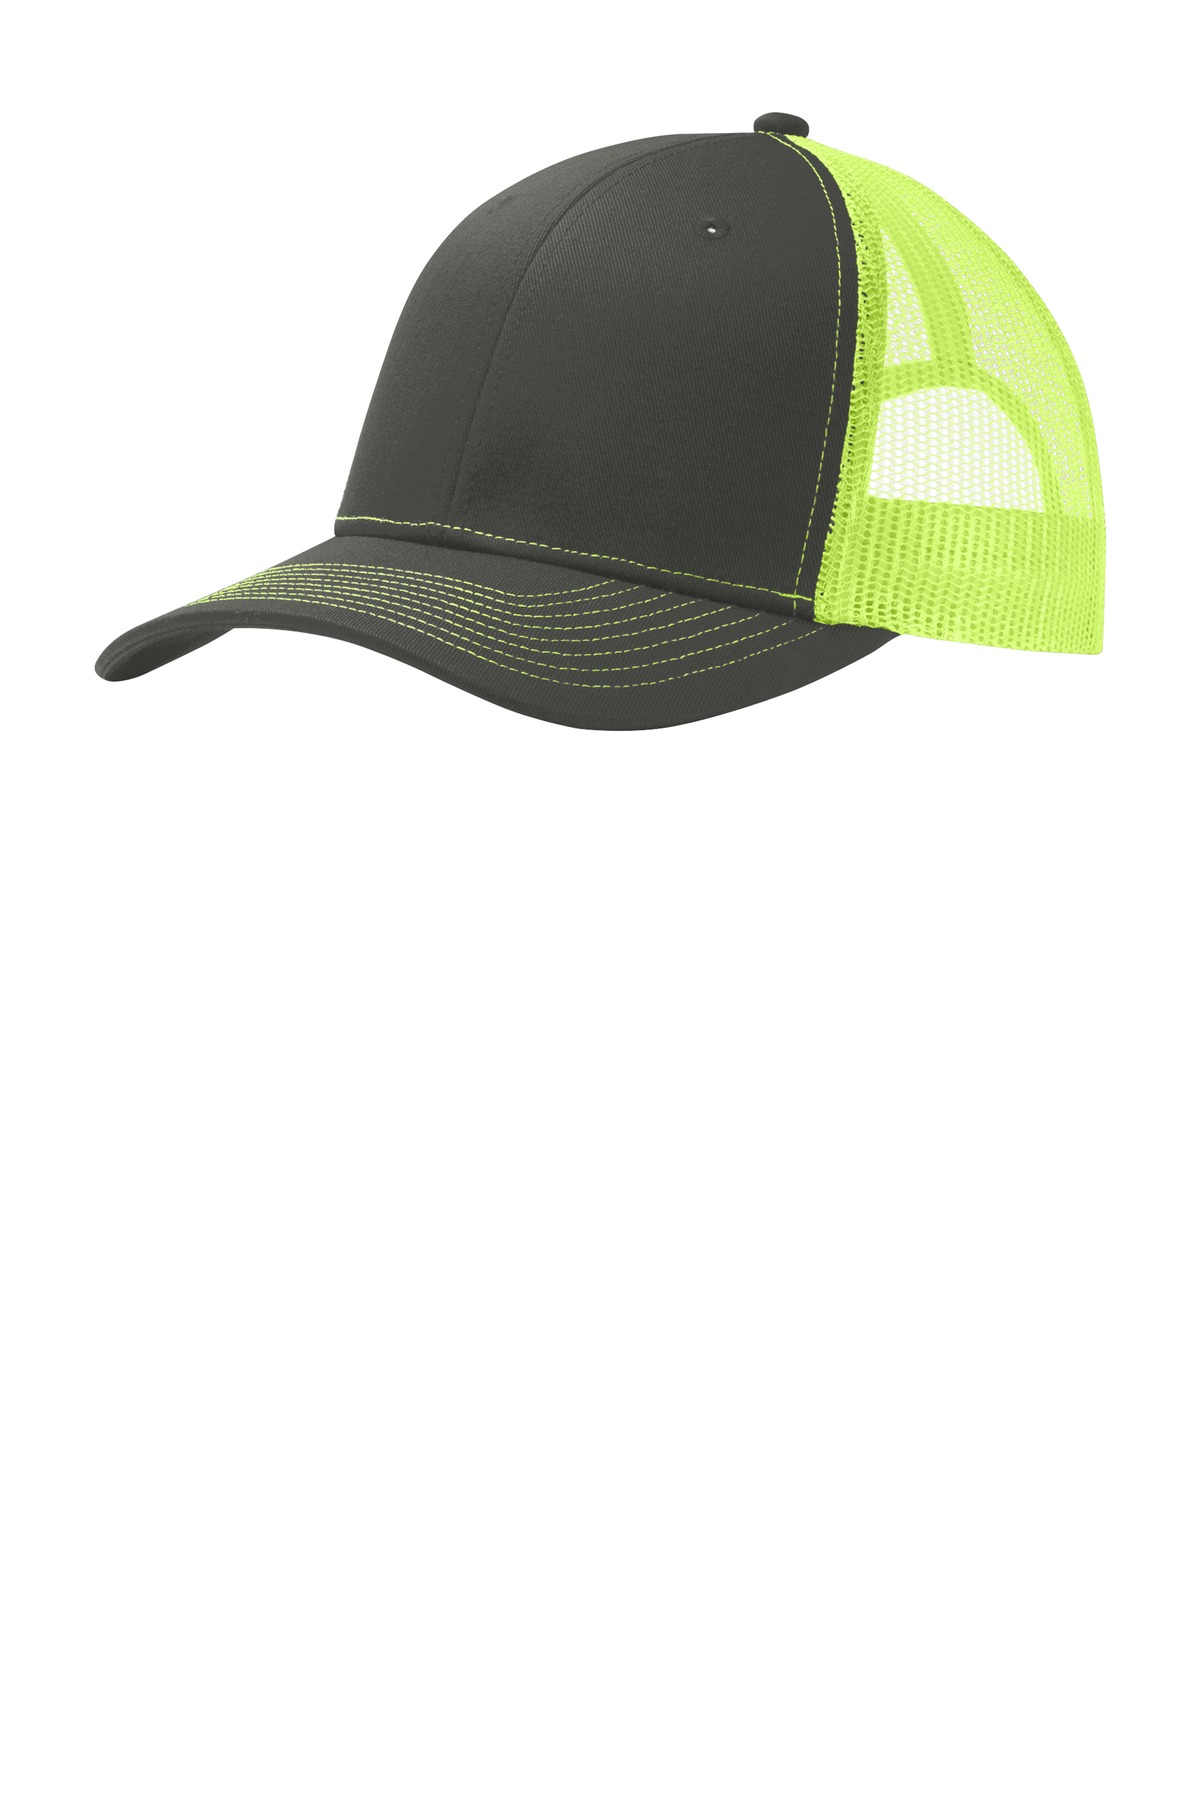 Port Authority ®  Snapback Trucker Cap. C112 - Grey Steel/ Neon Yellow